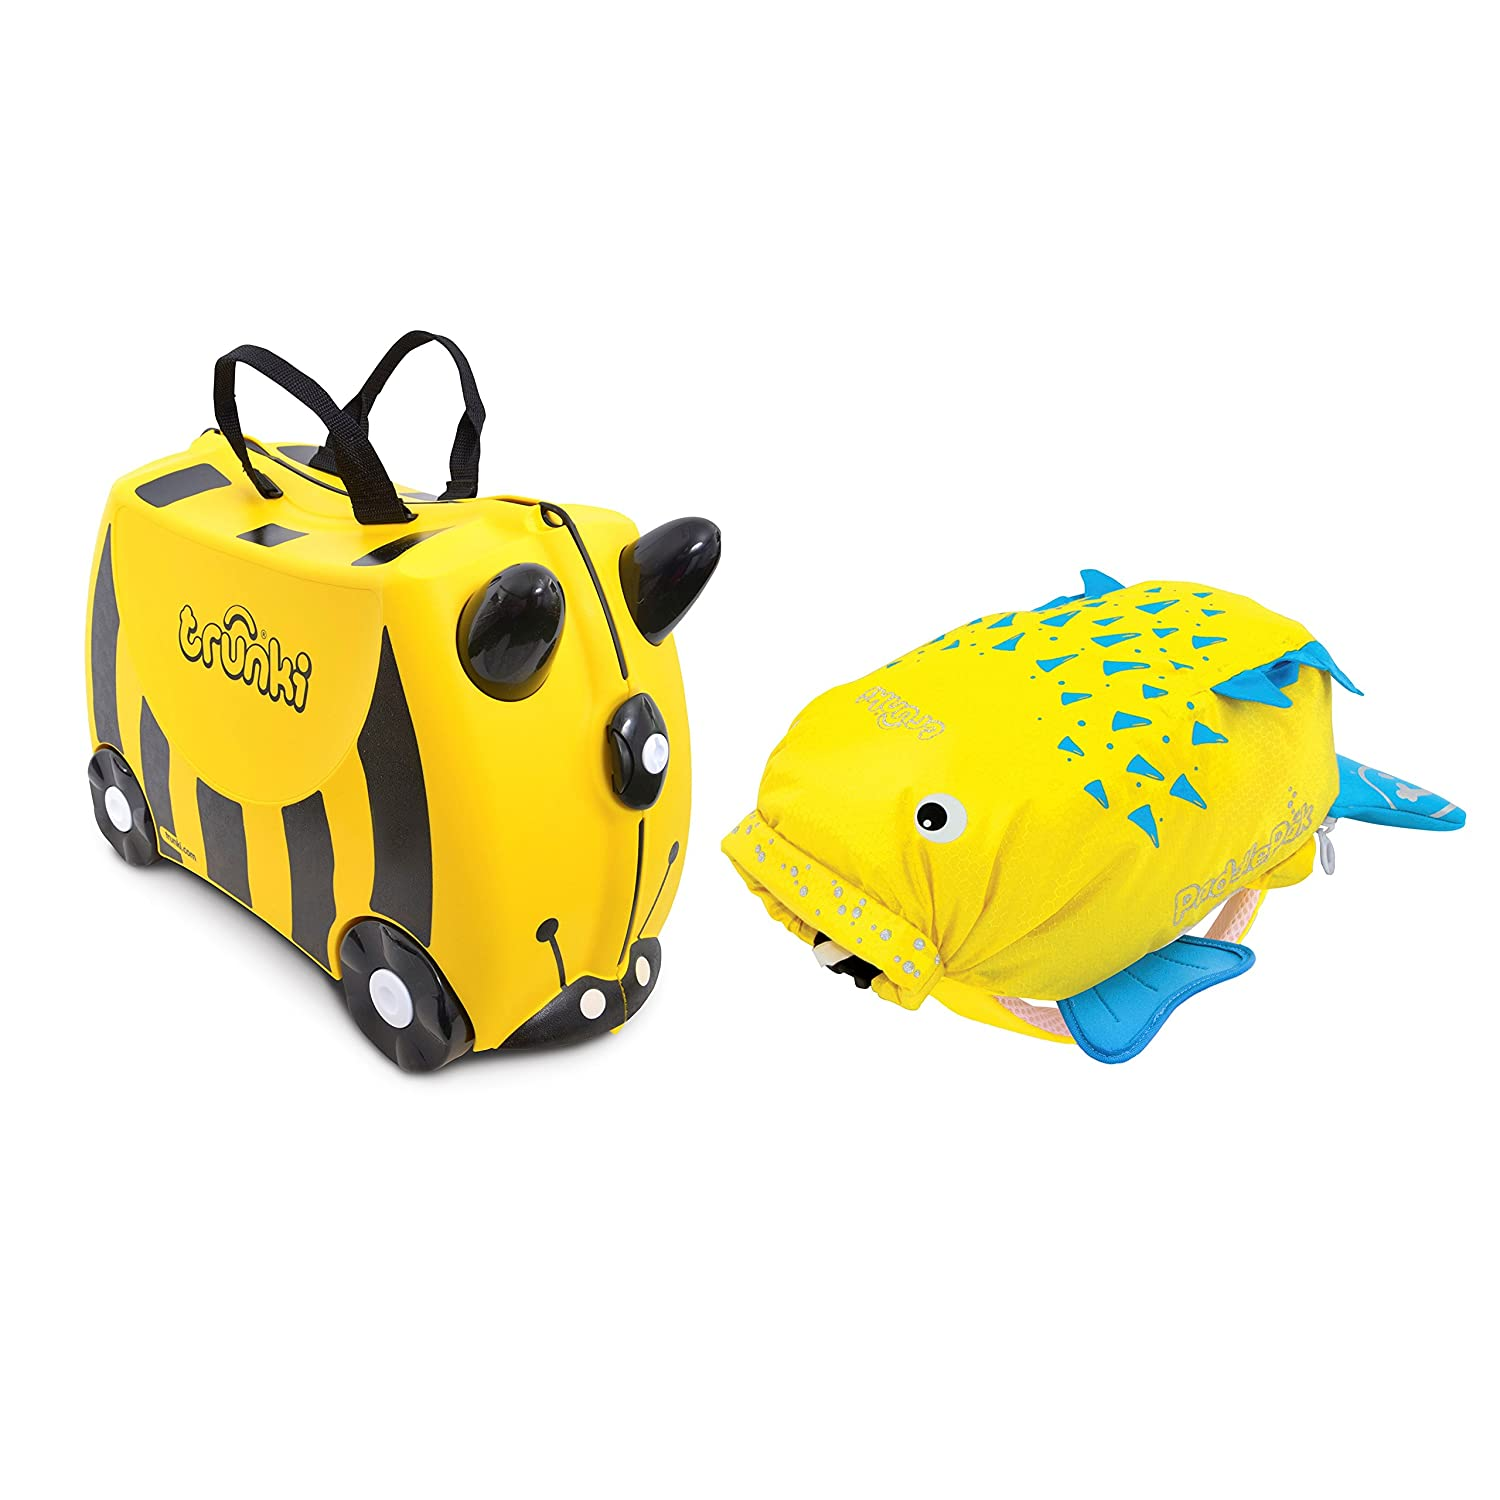 Trunki Ride-on Suitcase und PaddlePak Koffer-Set, 18 Liter, Gelb 0258-GB01